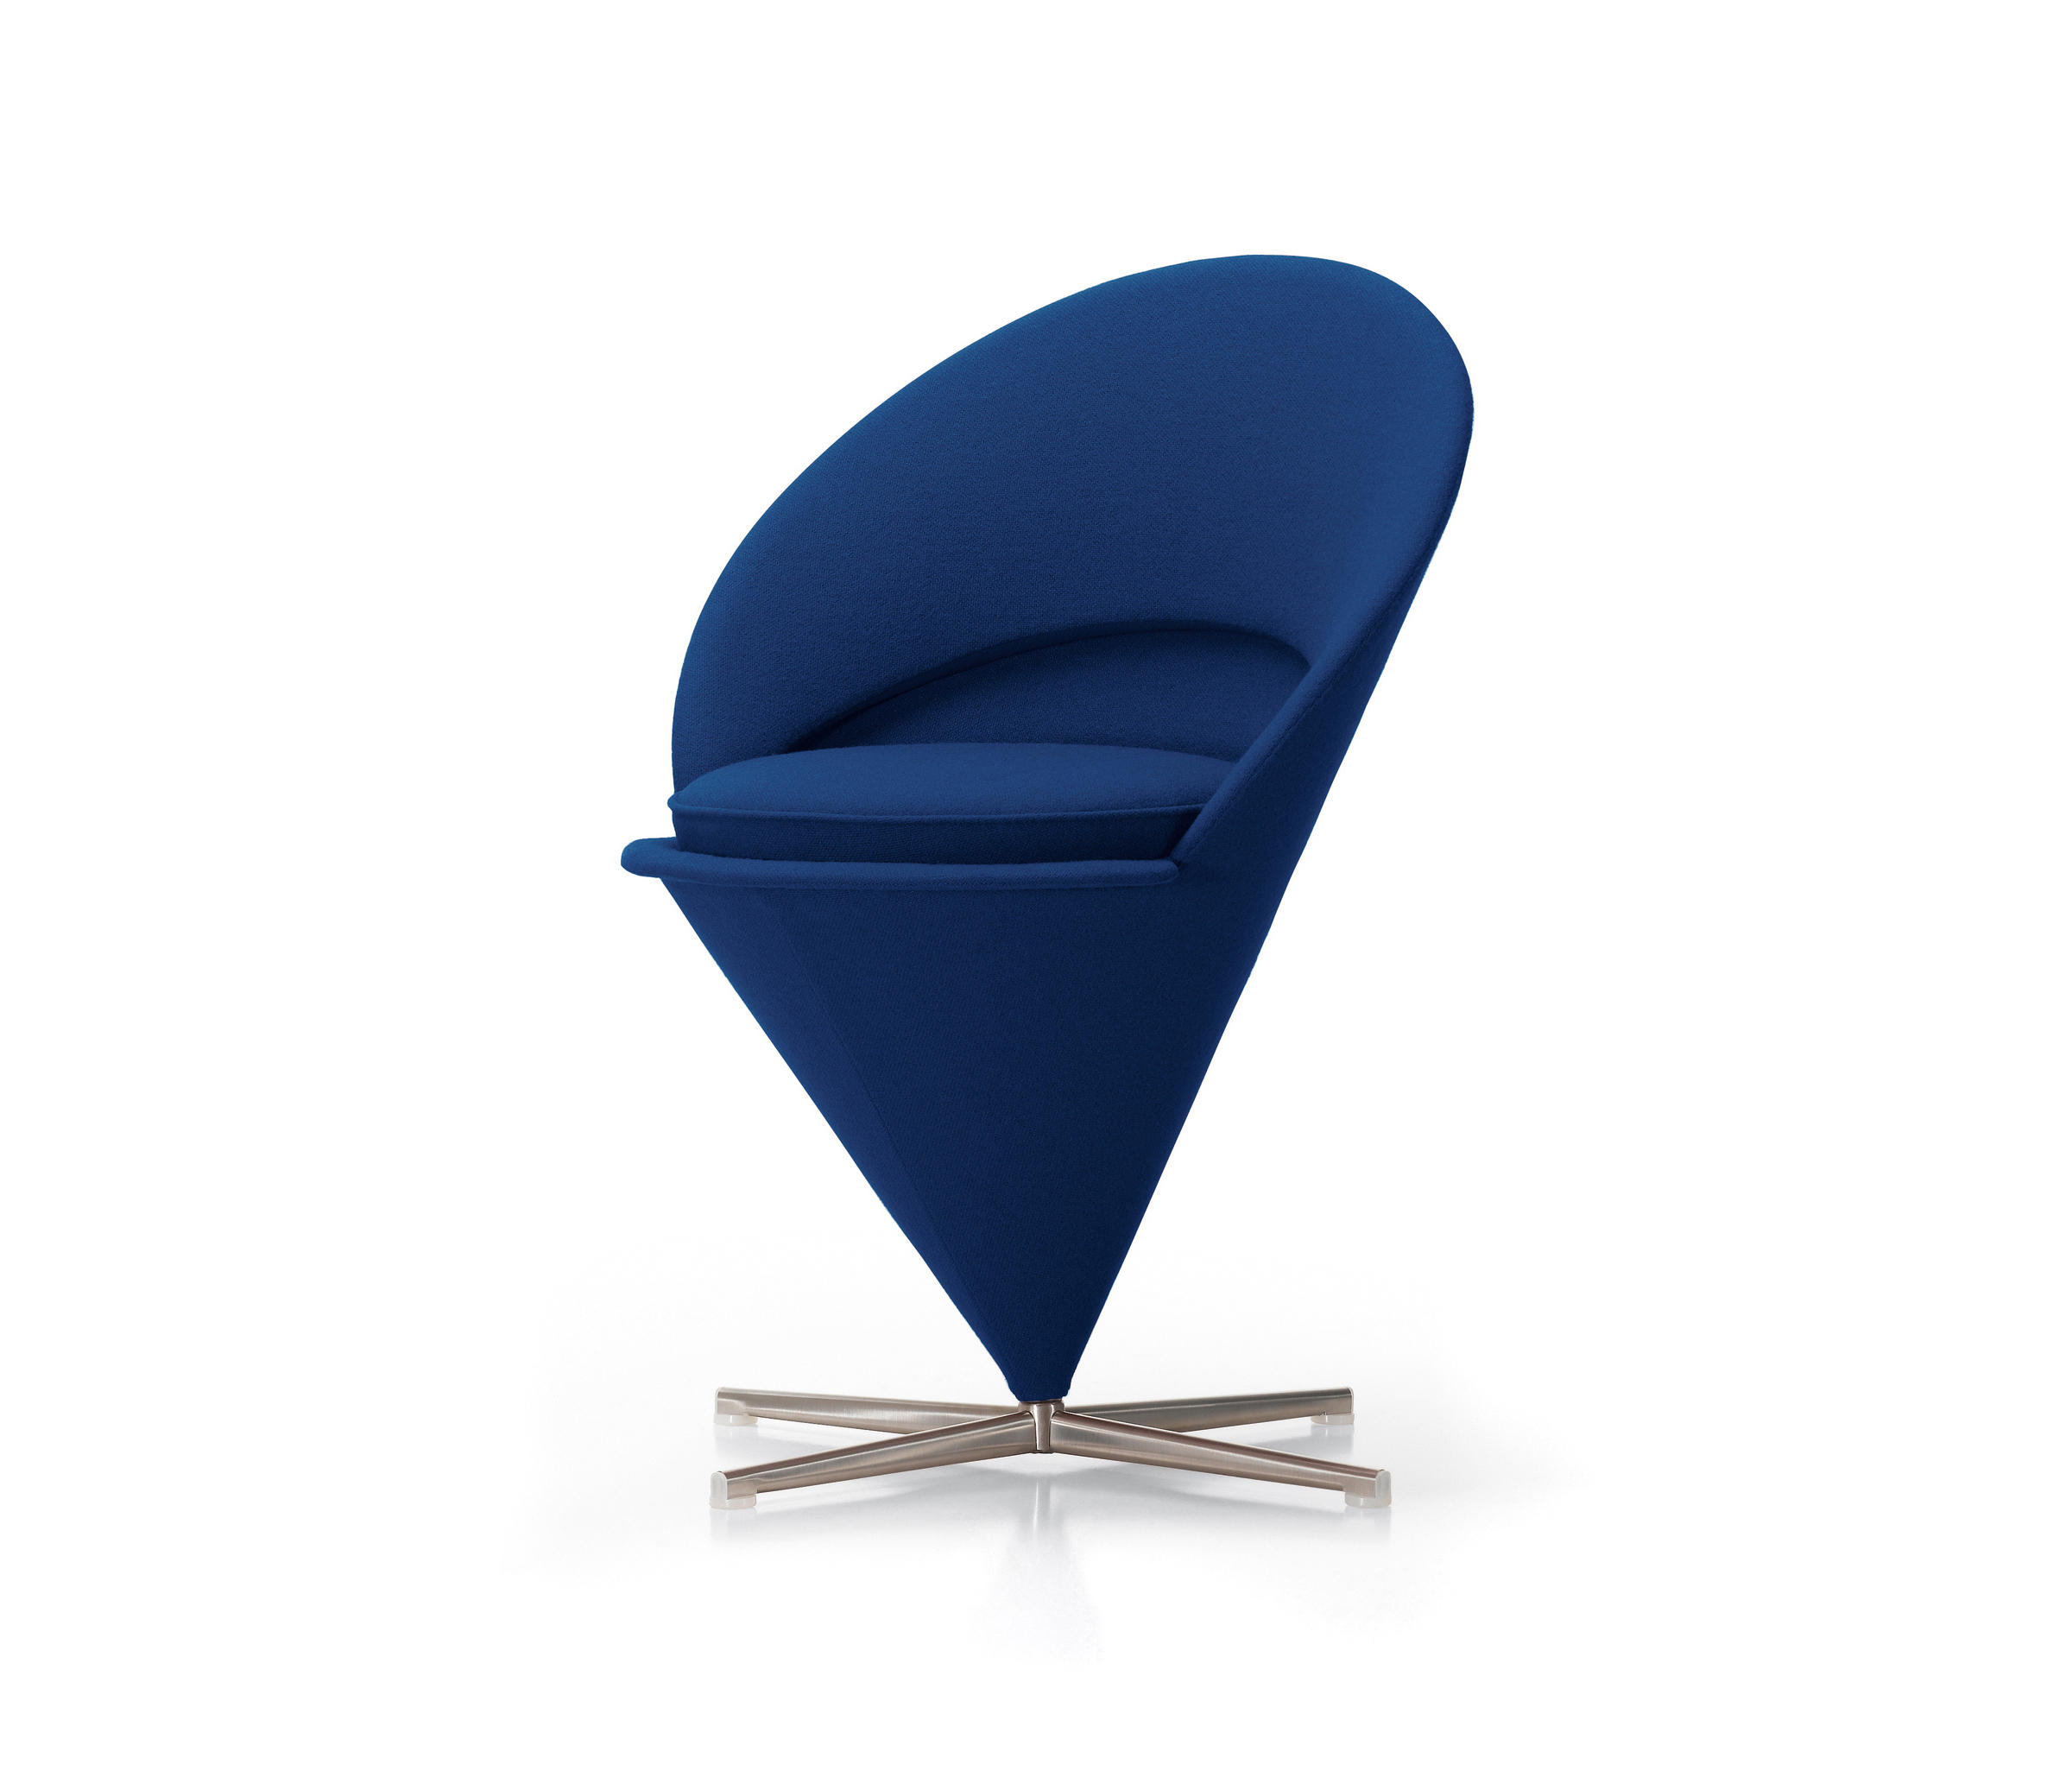 Ordinaire Cone Chair By Vitra | Chairs ...